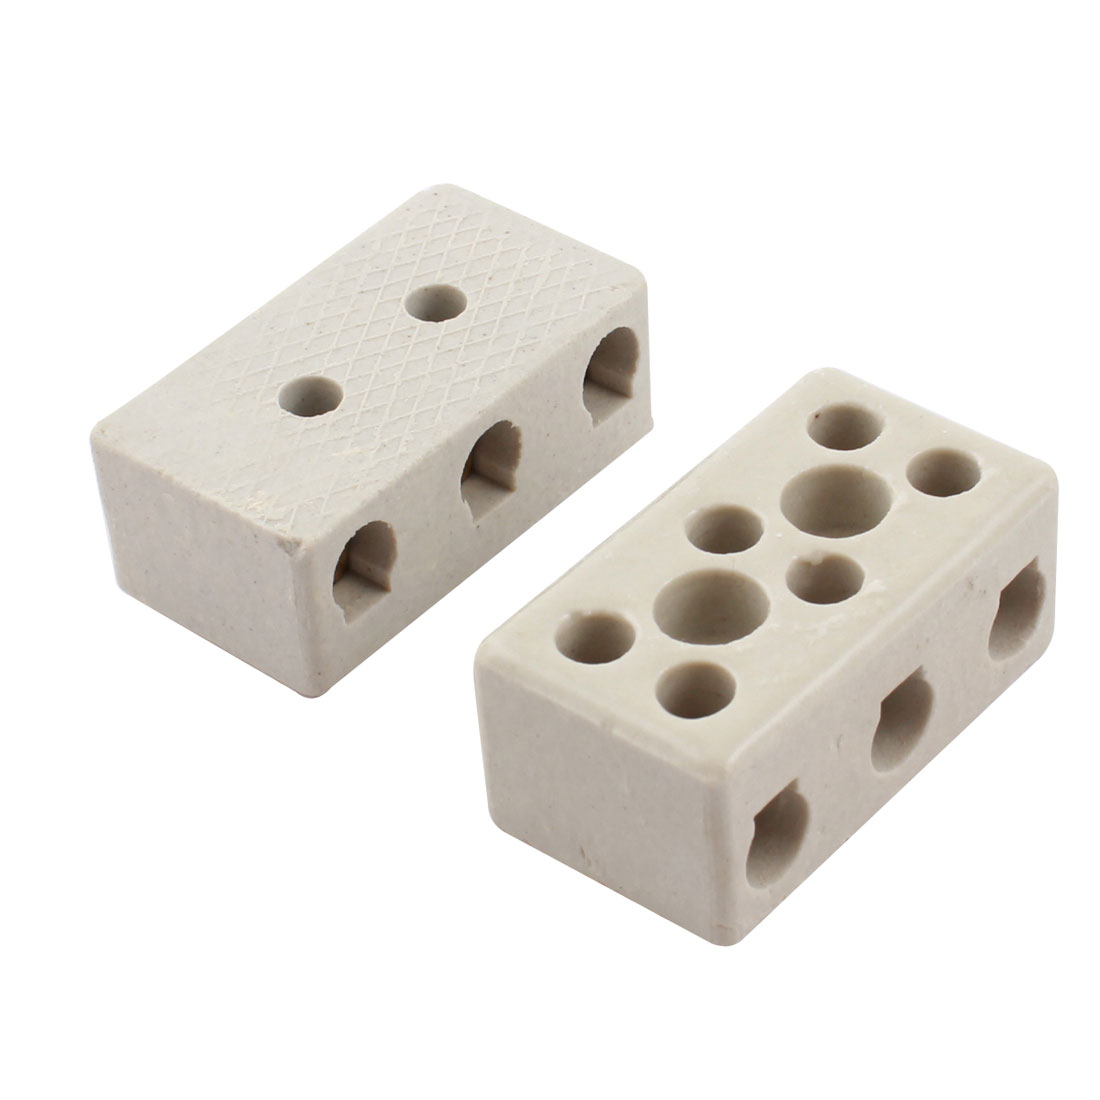 2 Pcs 10A 2W8H 2 Way 8 Hole Connector Porcelain Ceramic Terminal Block